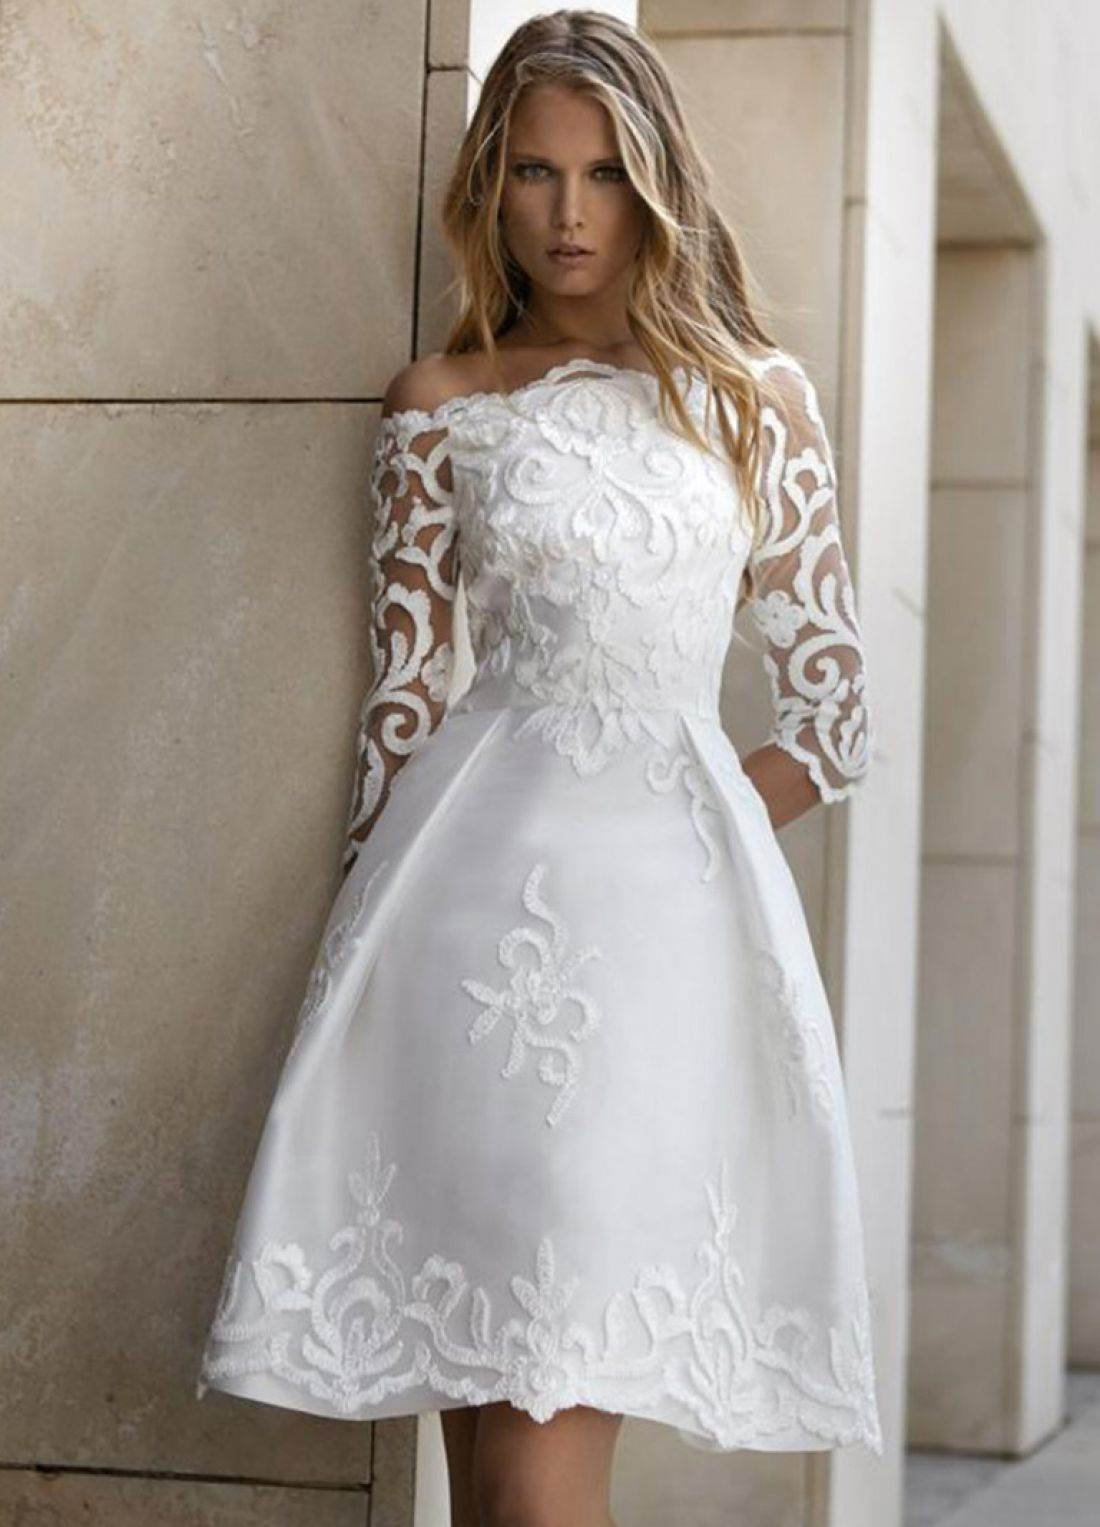 LA VENERE DI BERENICE - Weddings 427f7da52a97